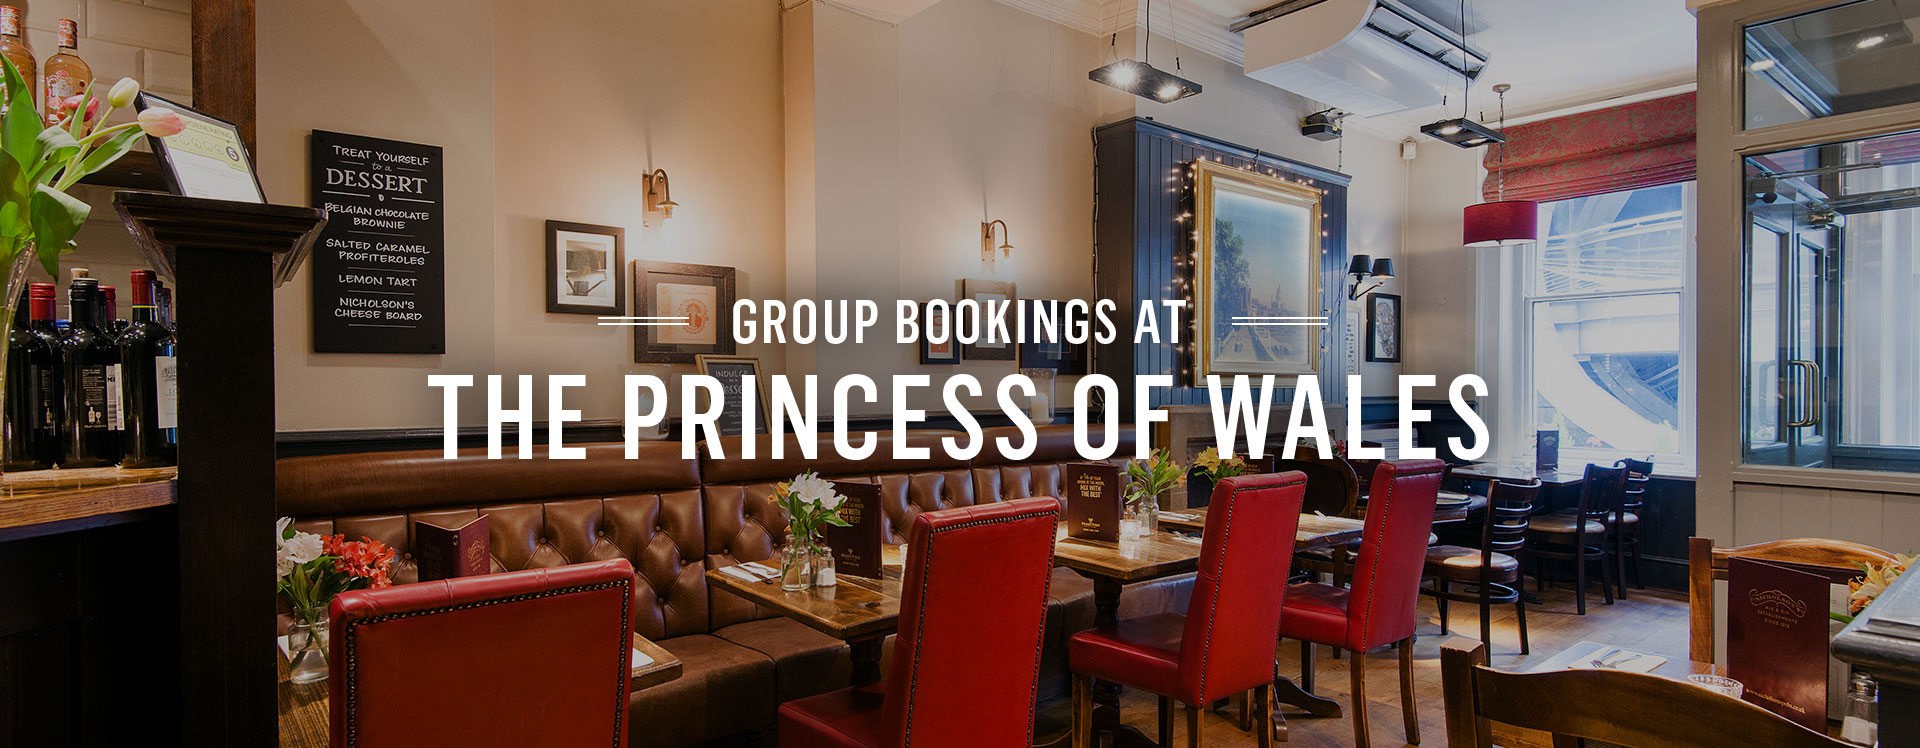 Group Bookings at The Princess Of Wales